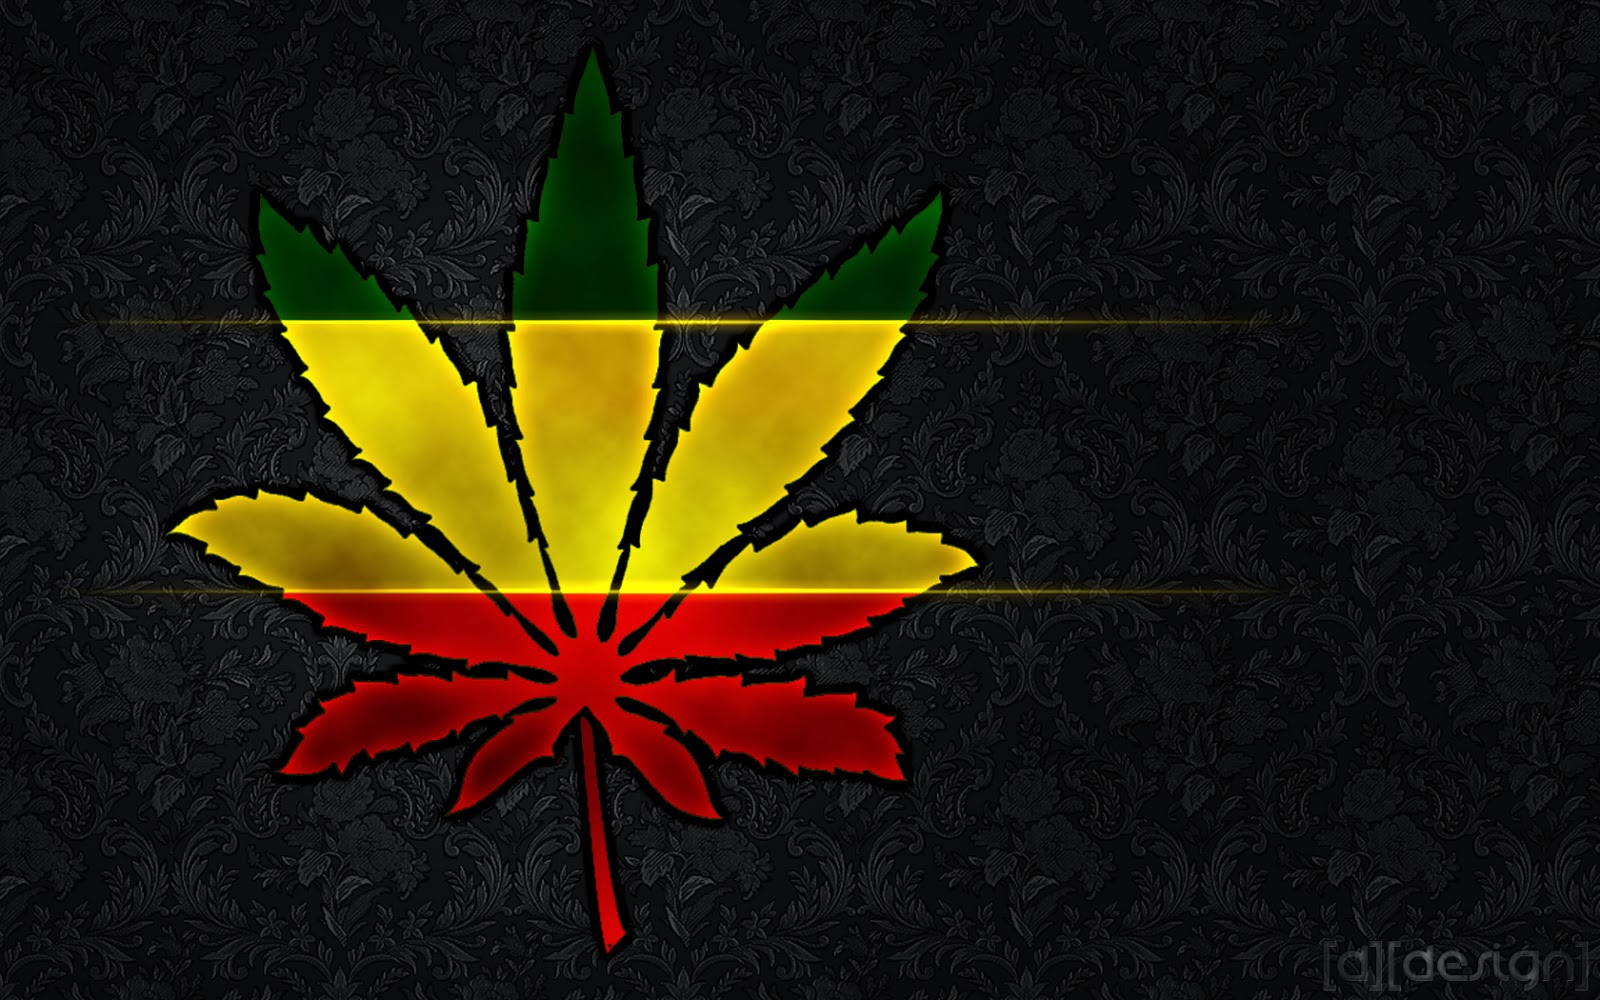 HD WALLPAPERS Weed Wallpapers